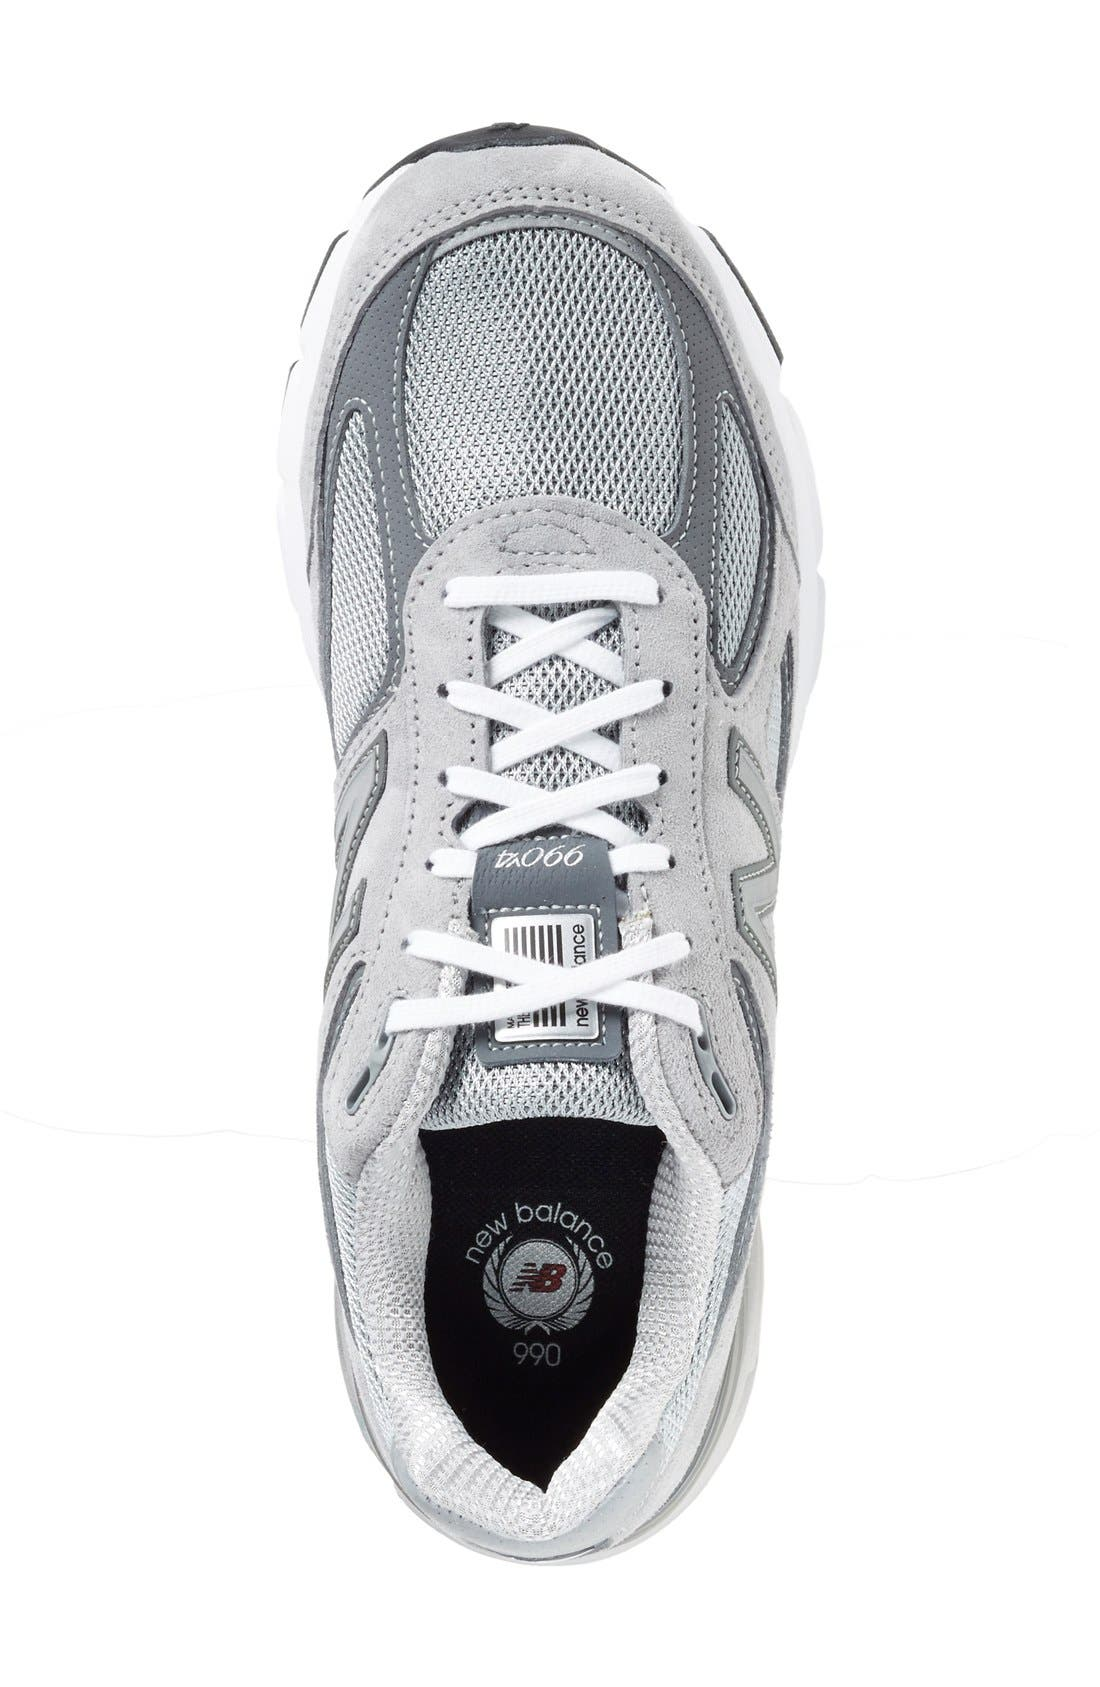 NEW BALANCE, '990' Running Shoe, Alternate thumbnail 3, color, COOL GREY